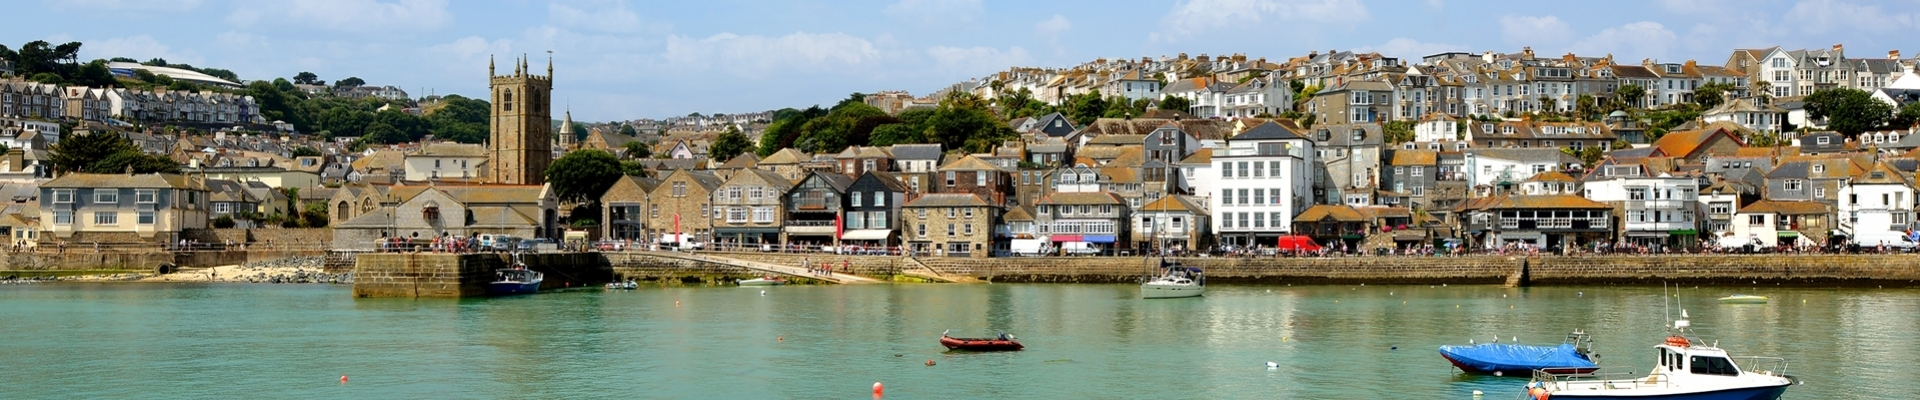 Bed and Breakfast Style Hotel in St Ives